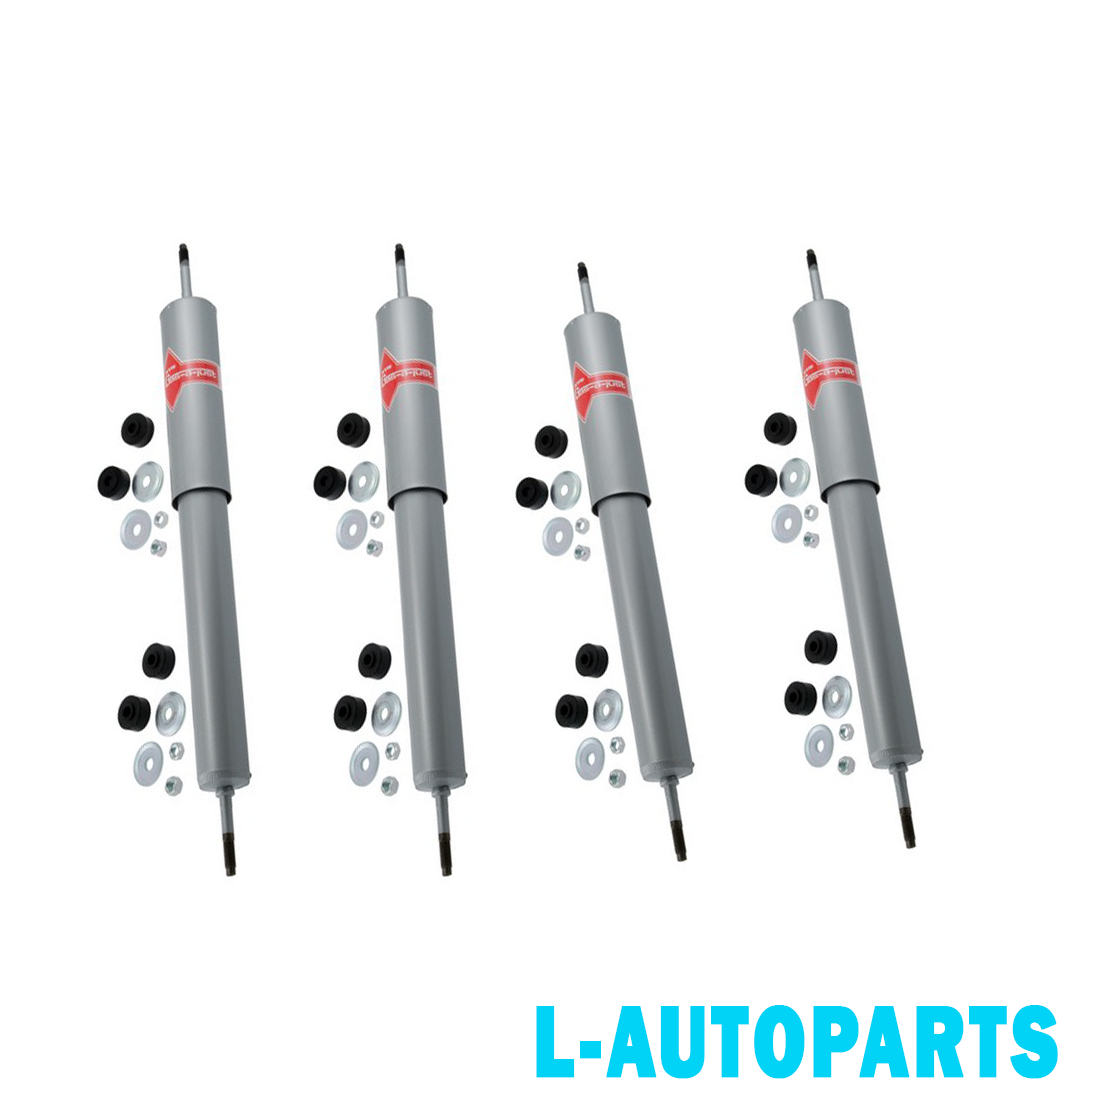 Pair Set of 2 Rear Gas-a-just KYB Suspen Shock Absorbers Ford Escape 2013-2017